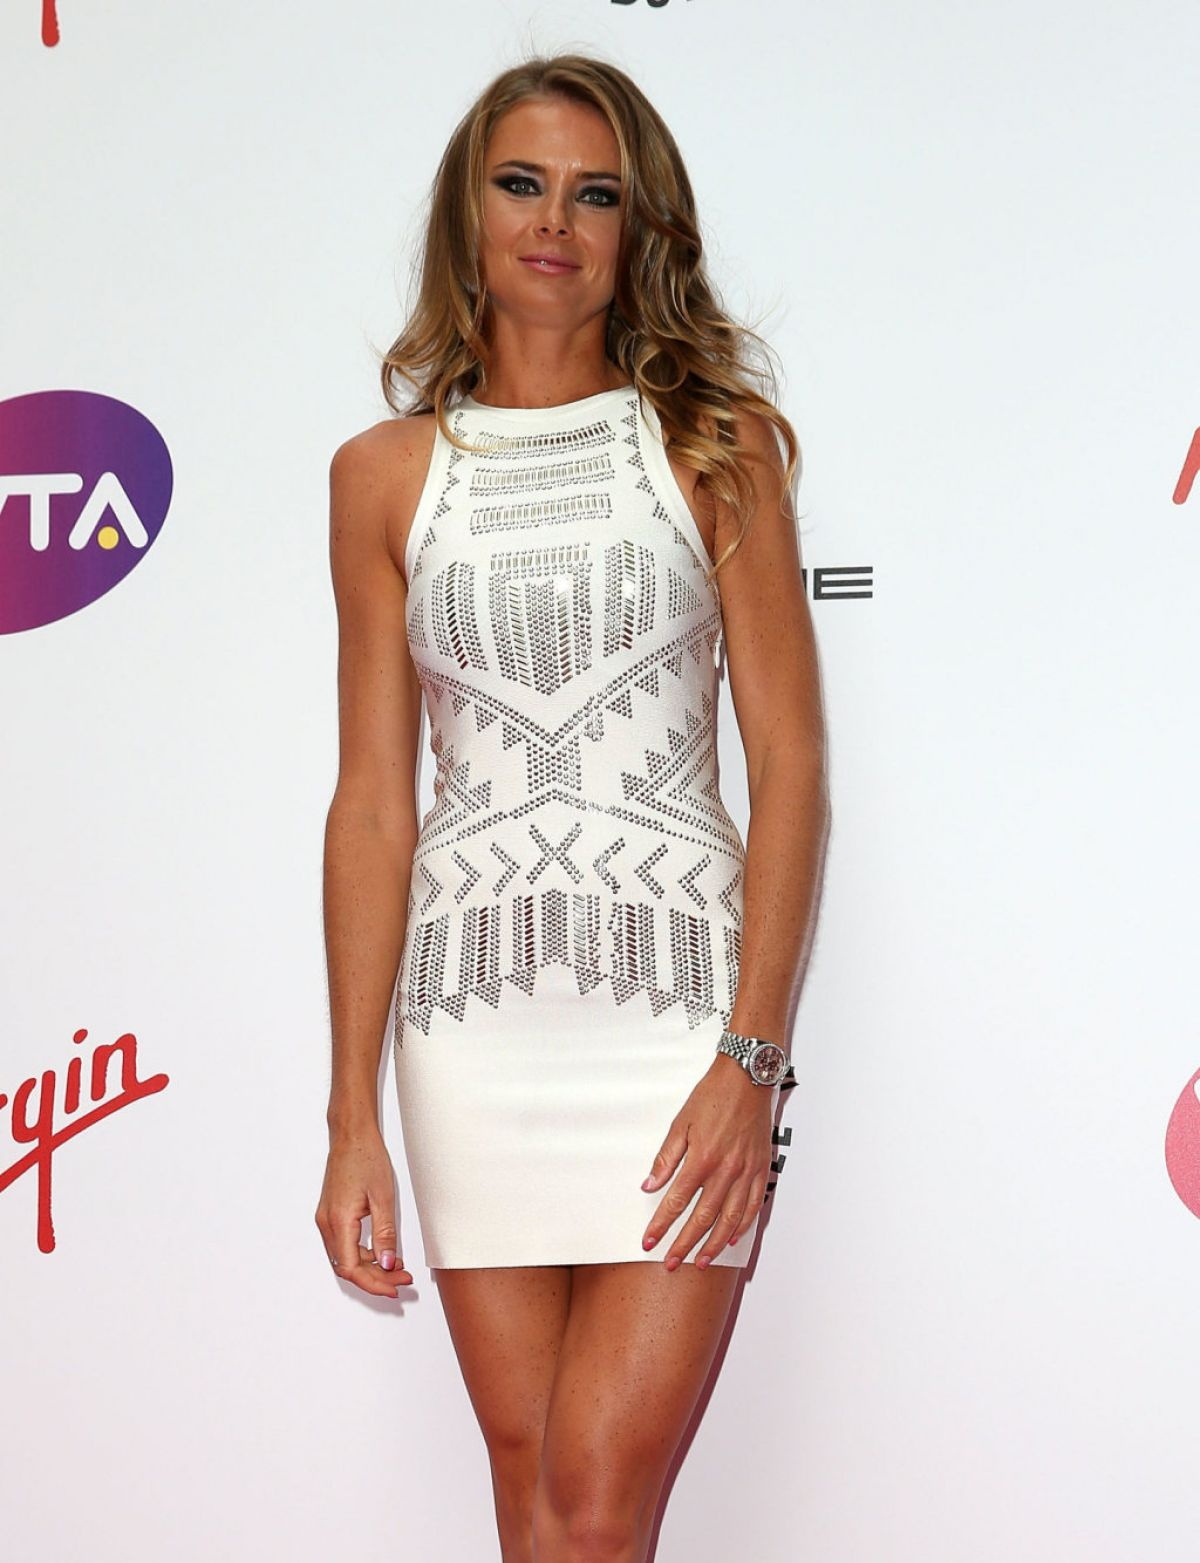 DANIELA HANTUCHOVA at WTA Pre-wimbledon Party in London